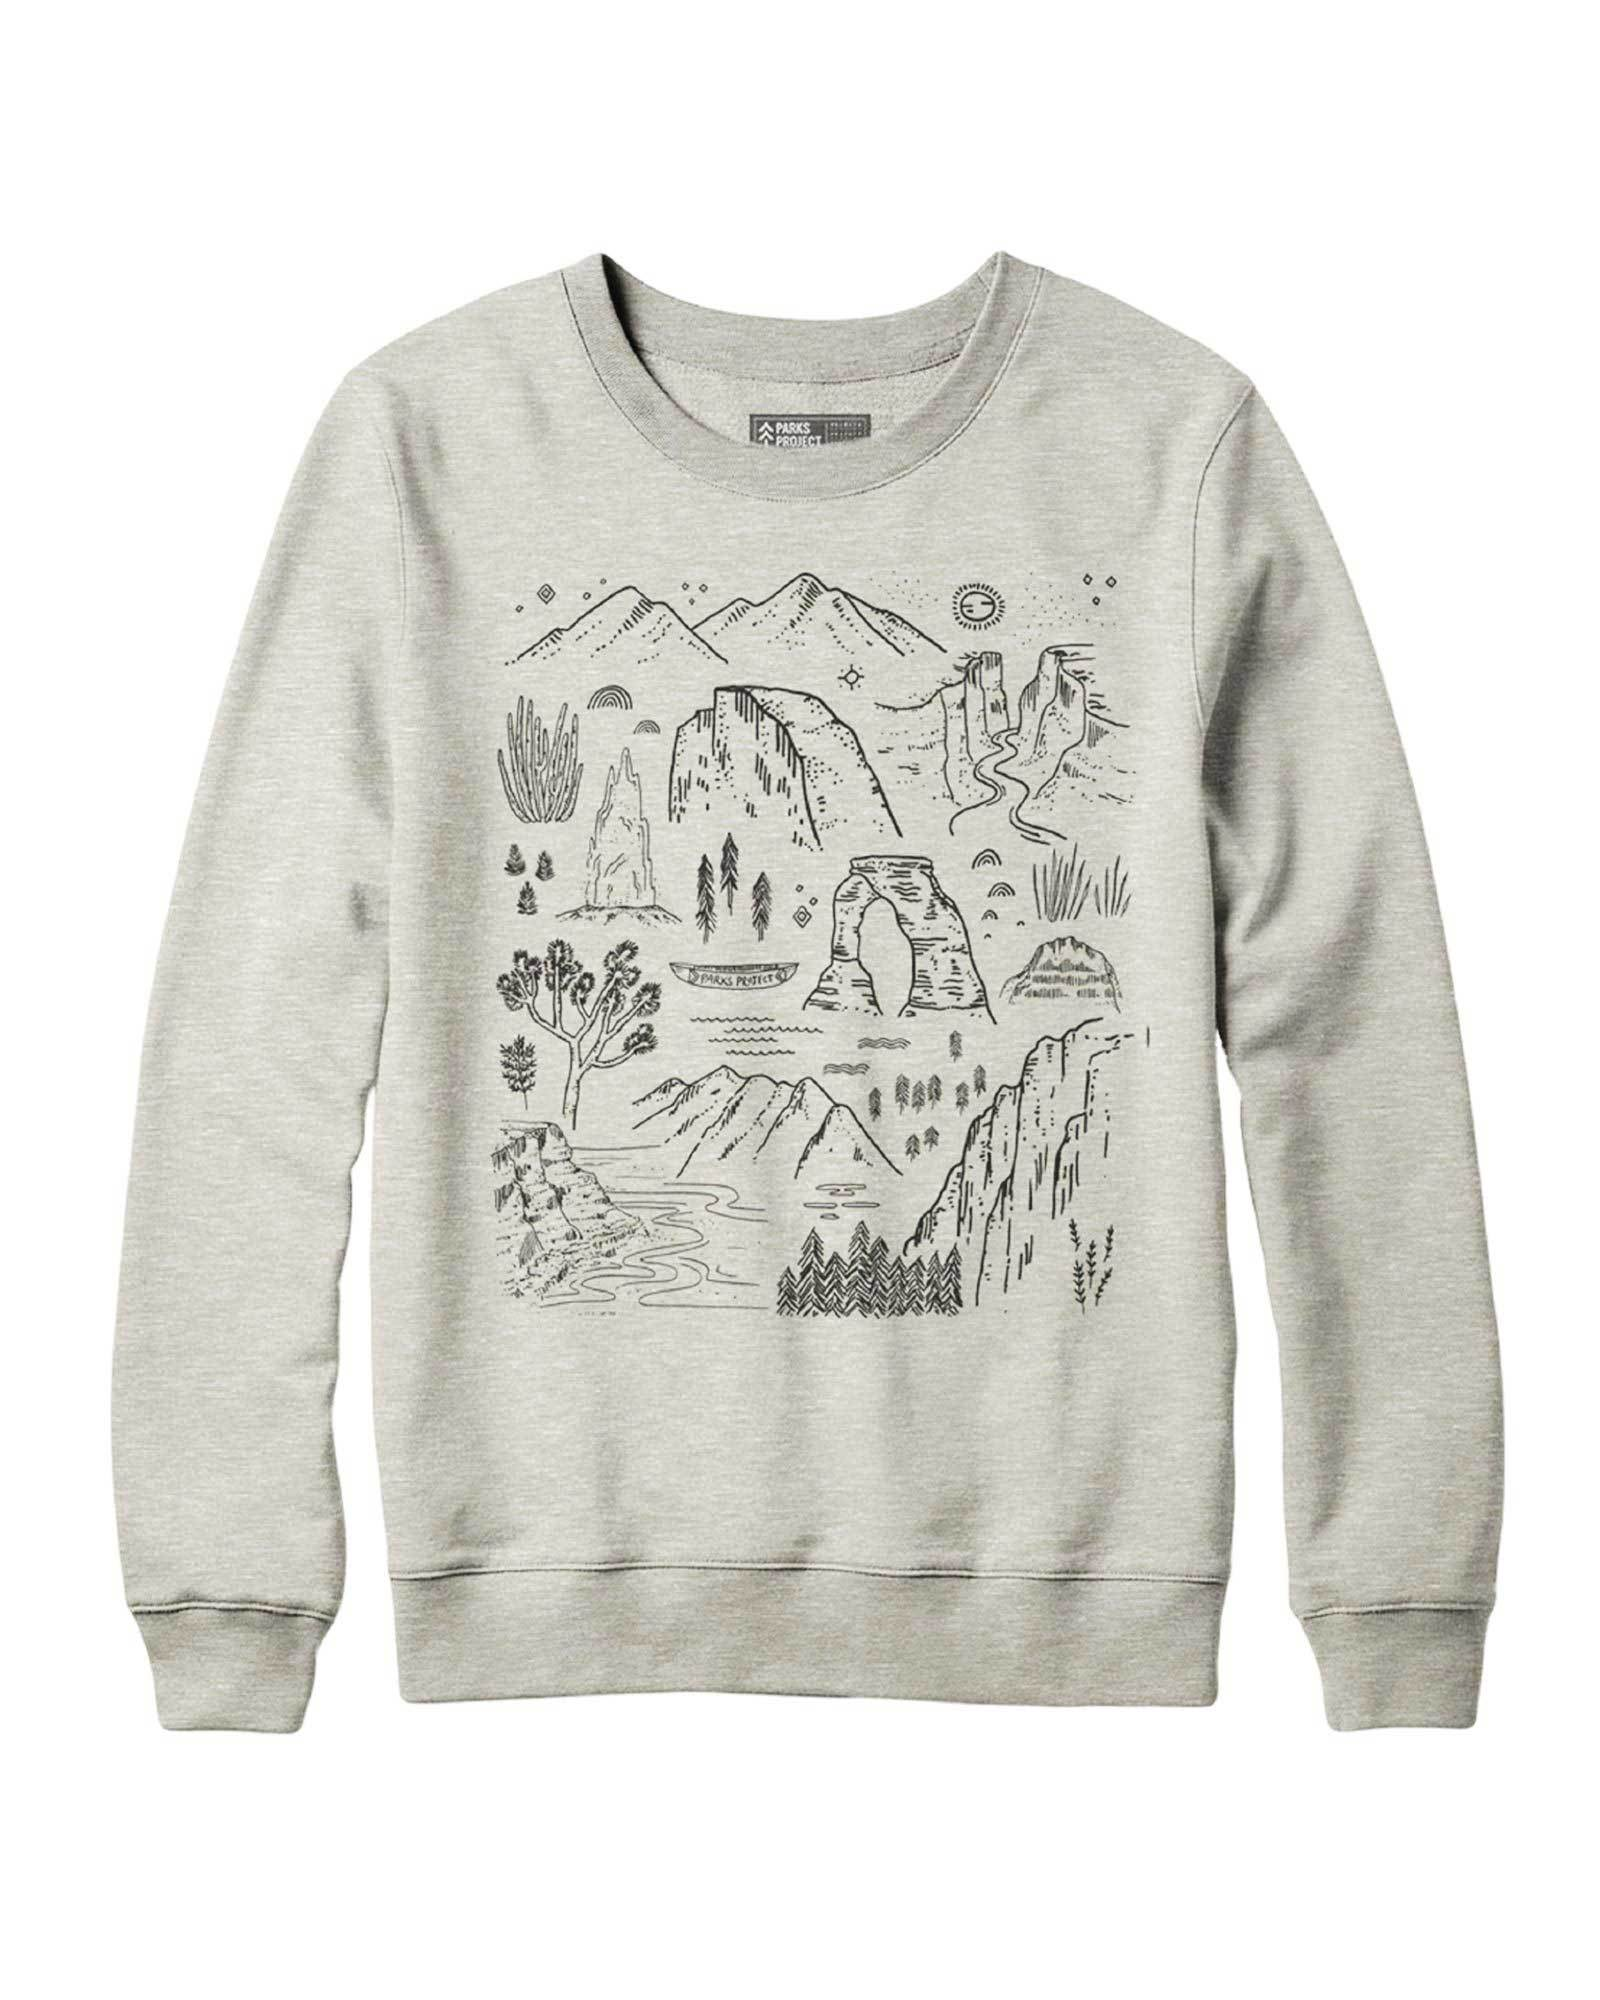 Iconic National Parks Crew Sweatshirt | Parks Project | National Park Sweatshirt